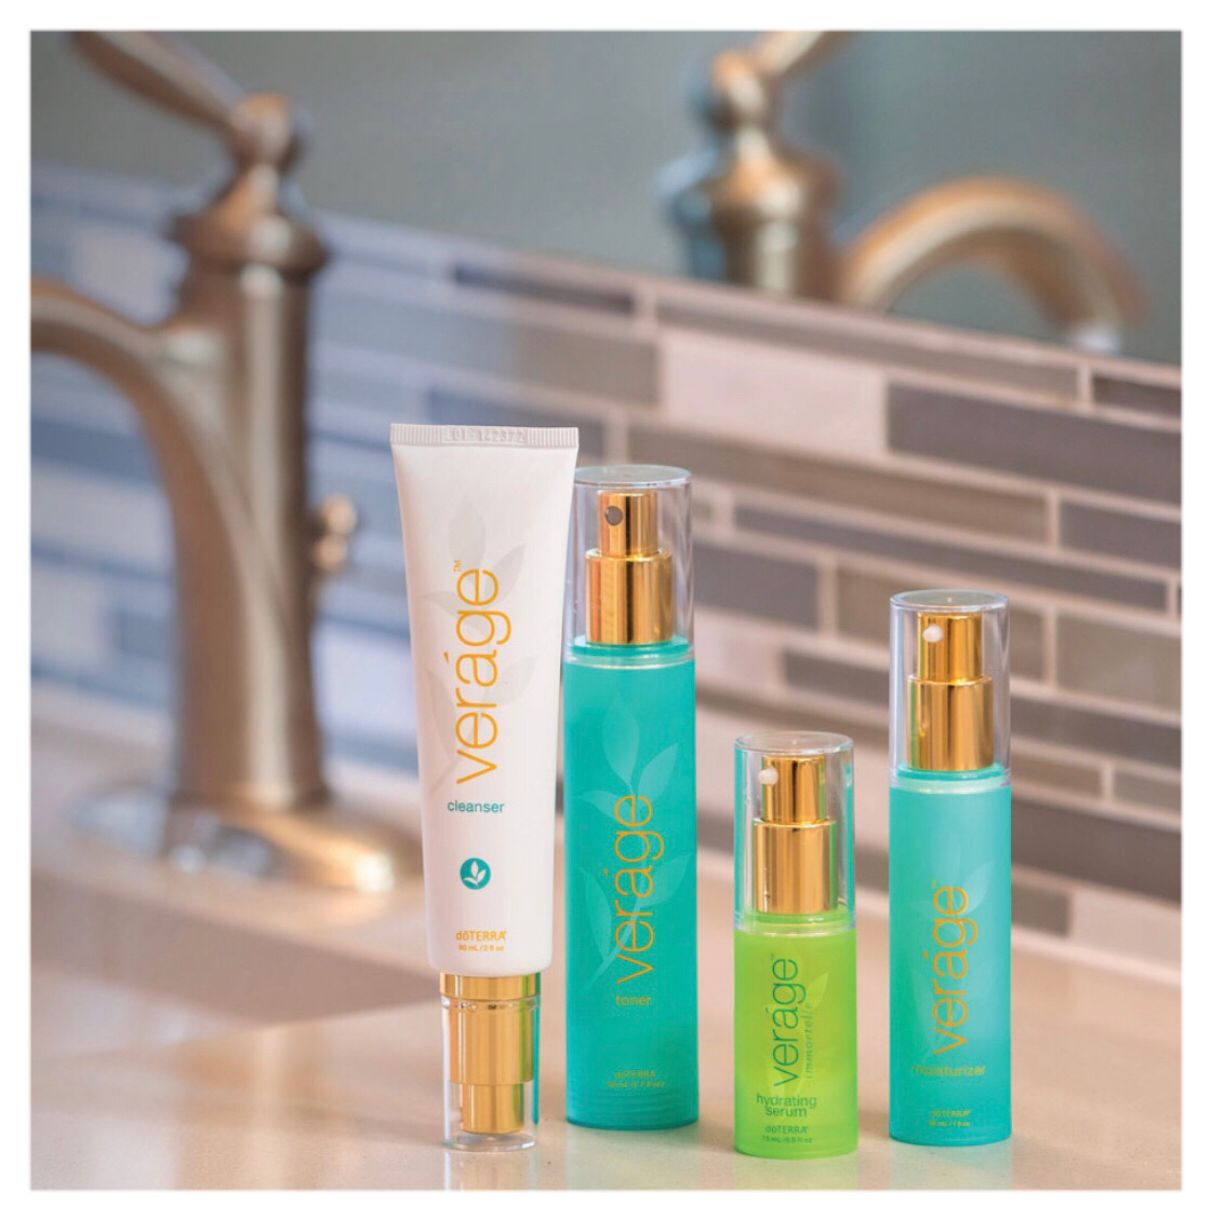 Verage Skin Care Cleanser And Toner Skin Care Collection Doterra